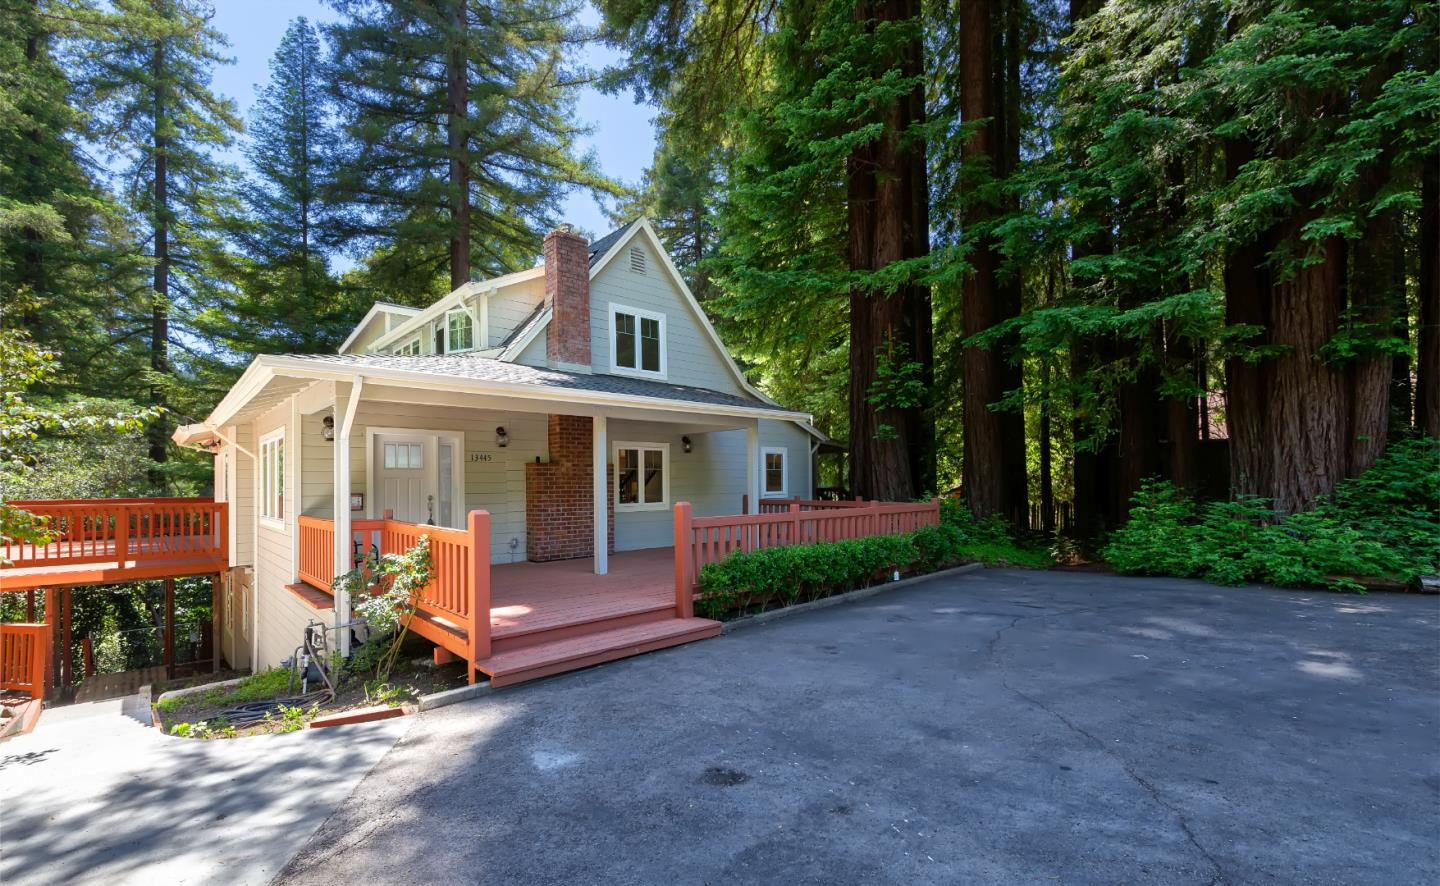 Back to Market! No way.... Nothing like this in Boulder Creek, totally turn key. Show and Sell!  Sheltering in place here wouldn't be so bad. You have a lovely updated mountain home located in seclusion, yet still a short distance to groceries and a babbling creek in your backyard. Although a half acre, this piece of land is ALL usable and mostly flat, except your private trail leading down to Boulder Creek. This would be a lovely place to start your next chapter.  Come see it!